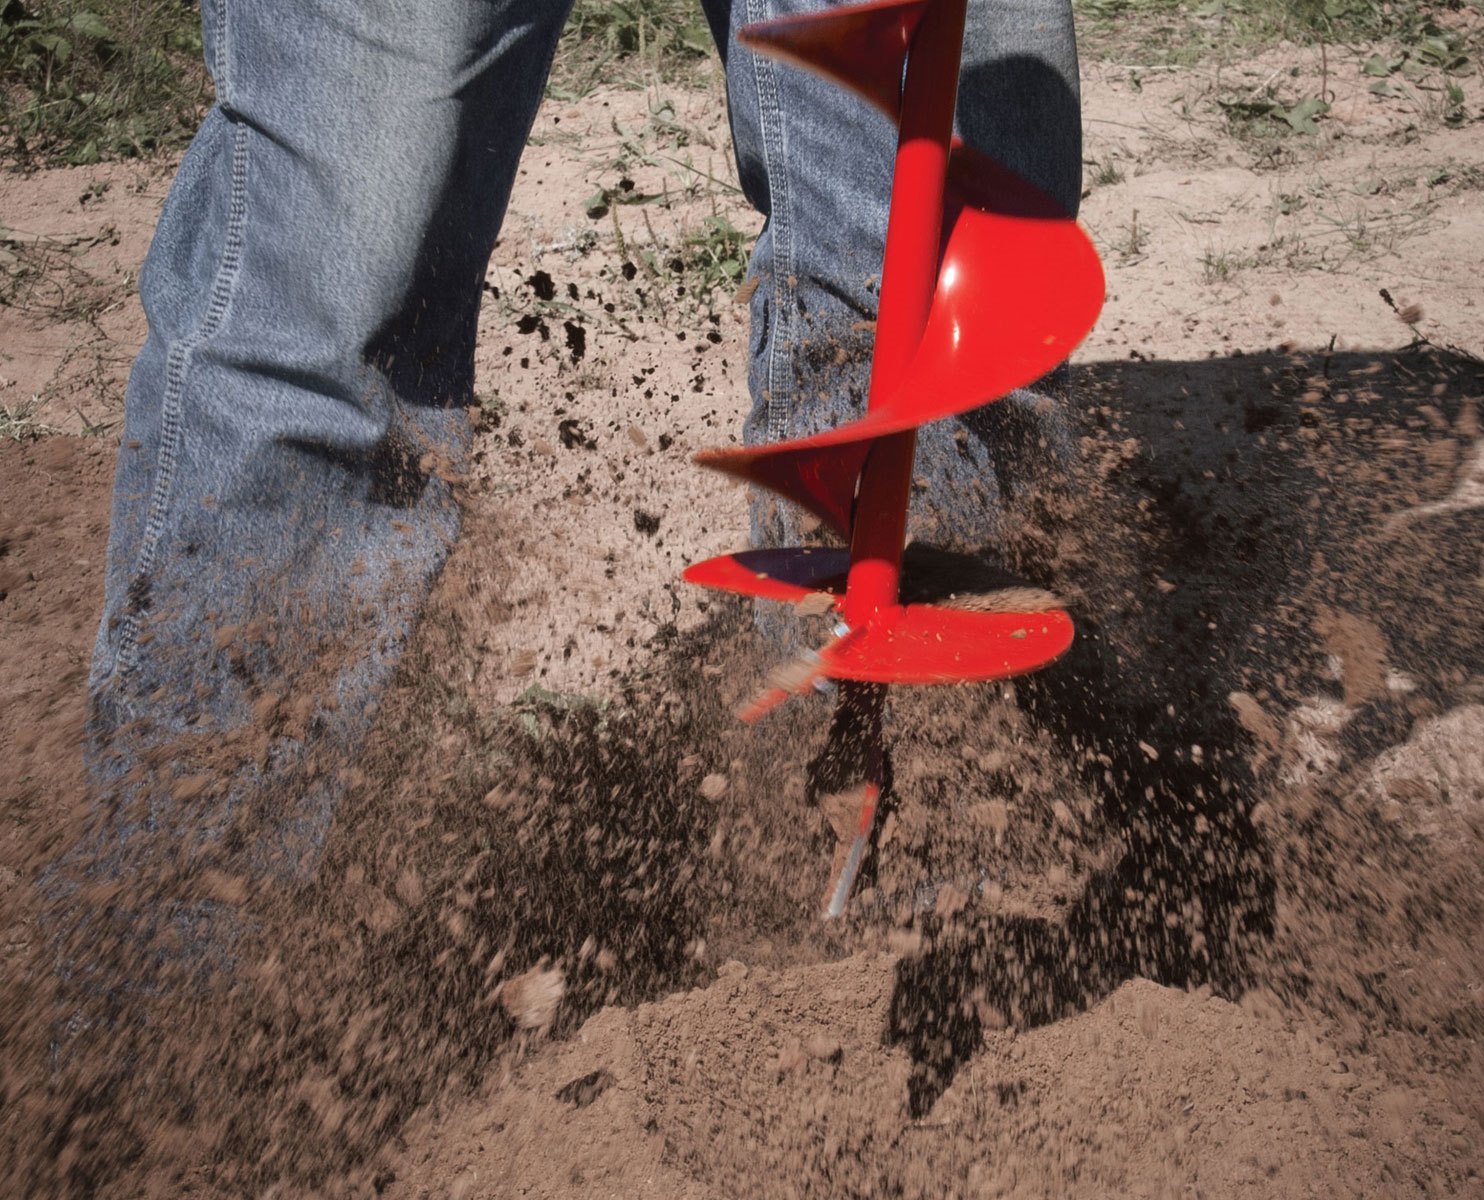 Earthquake E43 Earth Auger: Ground-breaking Power